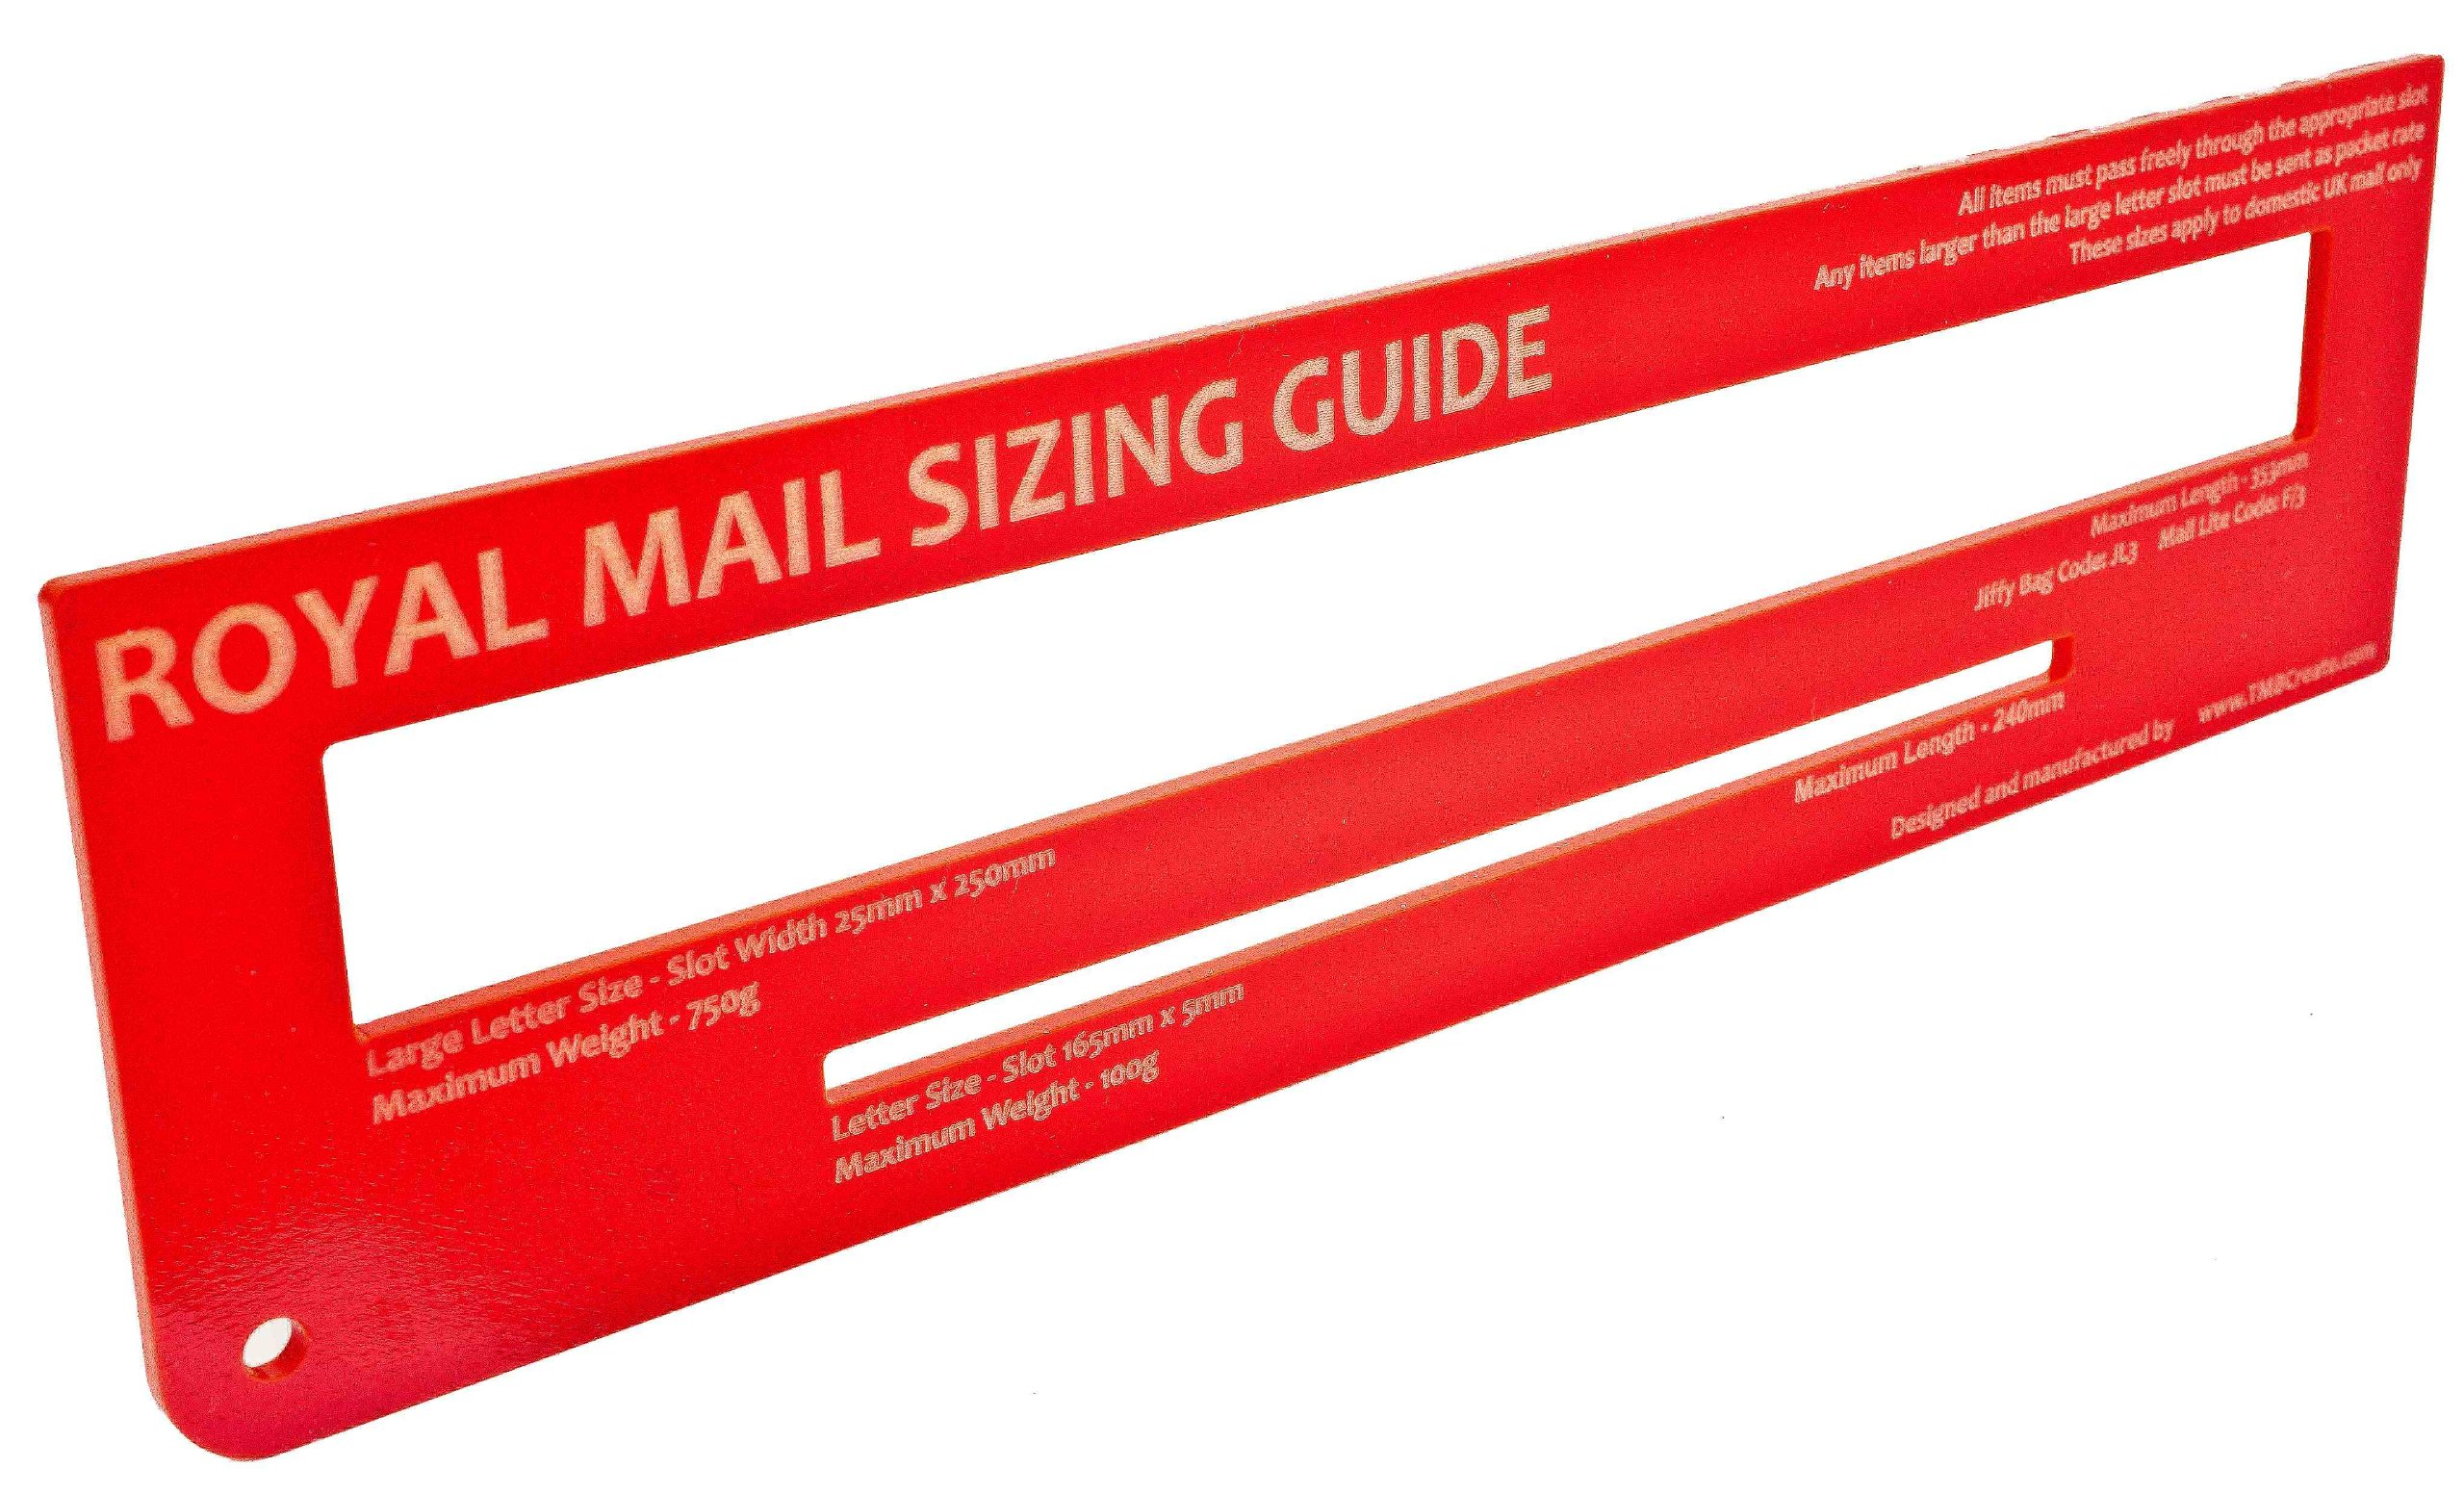 Royal Mail Postal Guide / Template for Pricing In Proportion